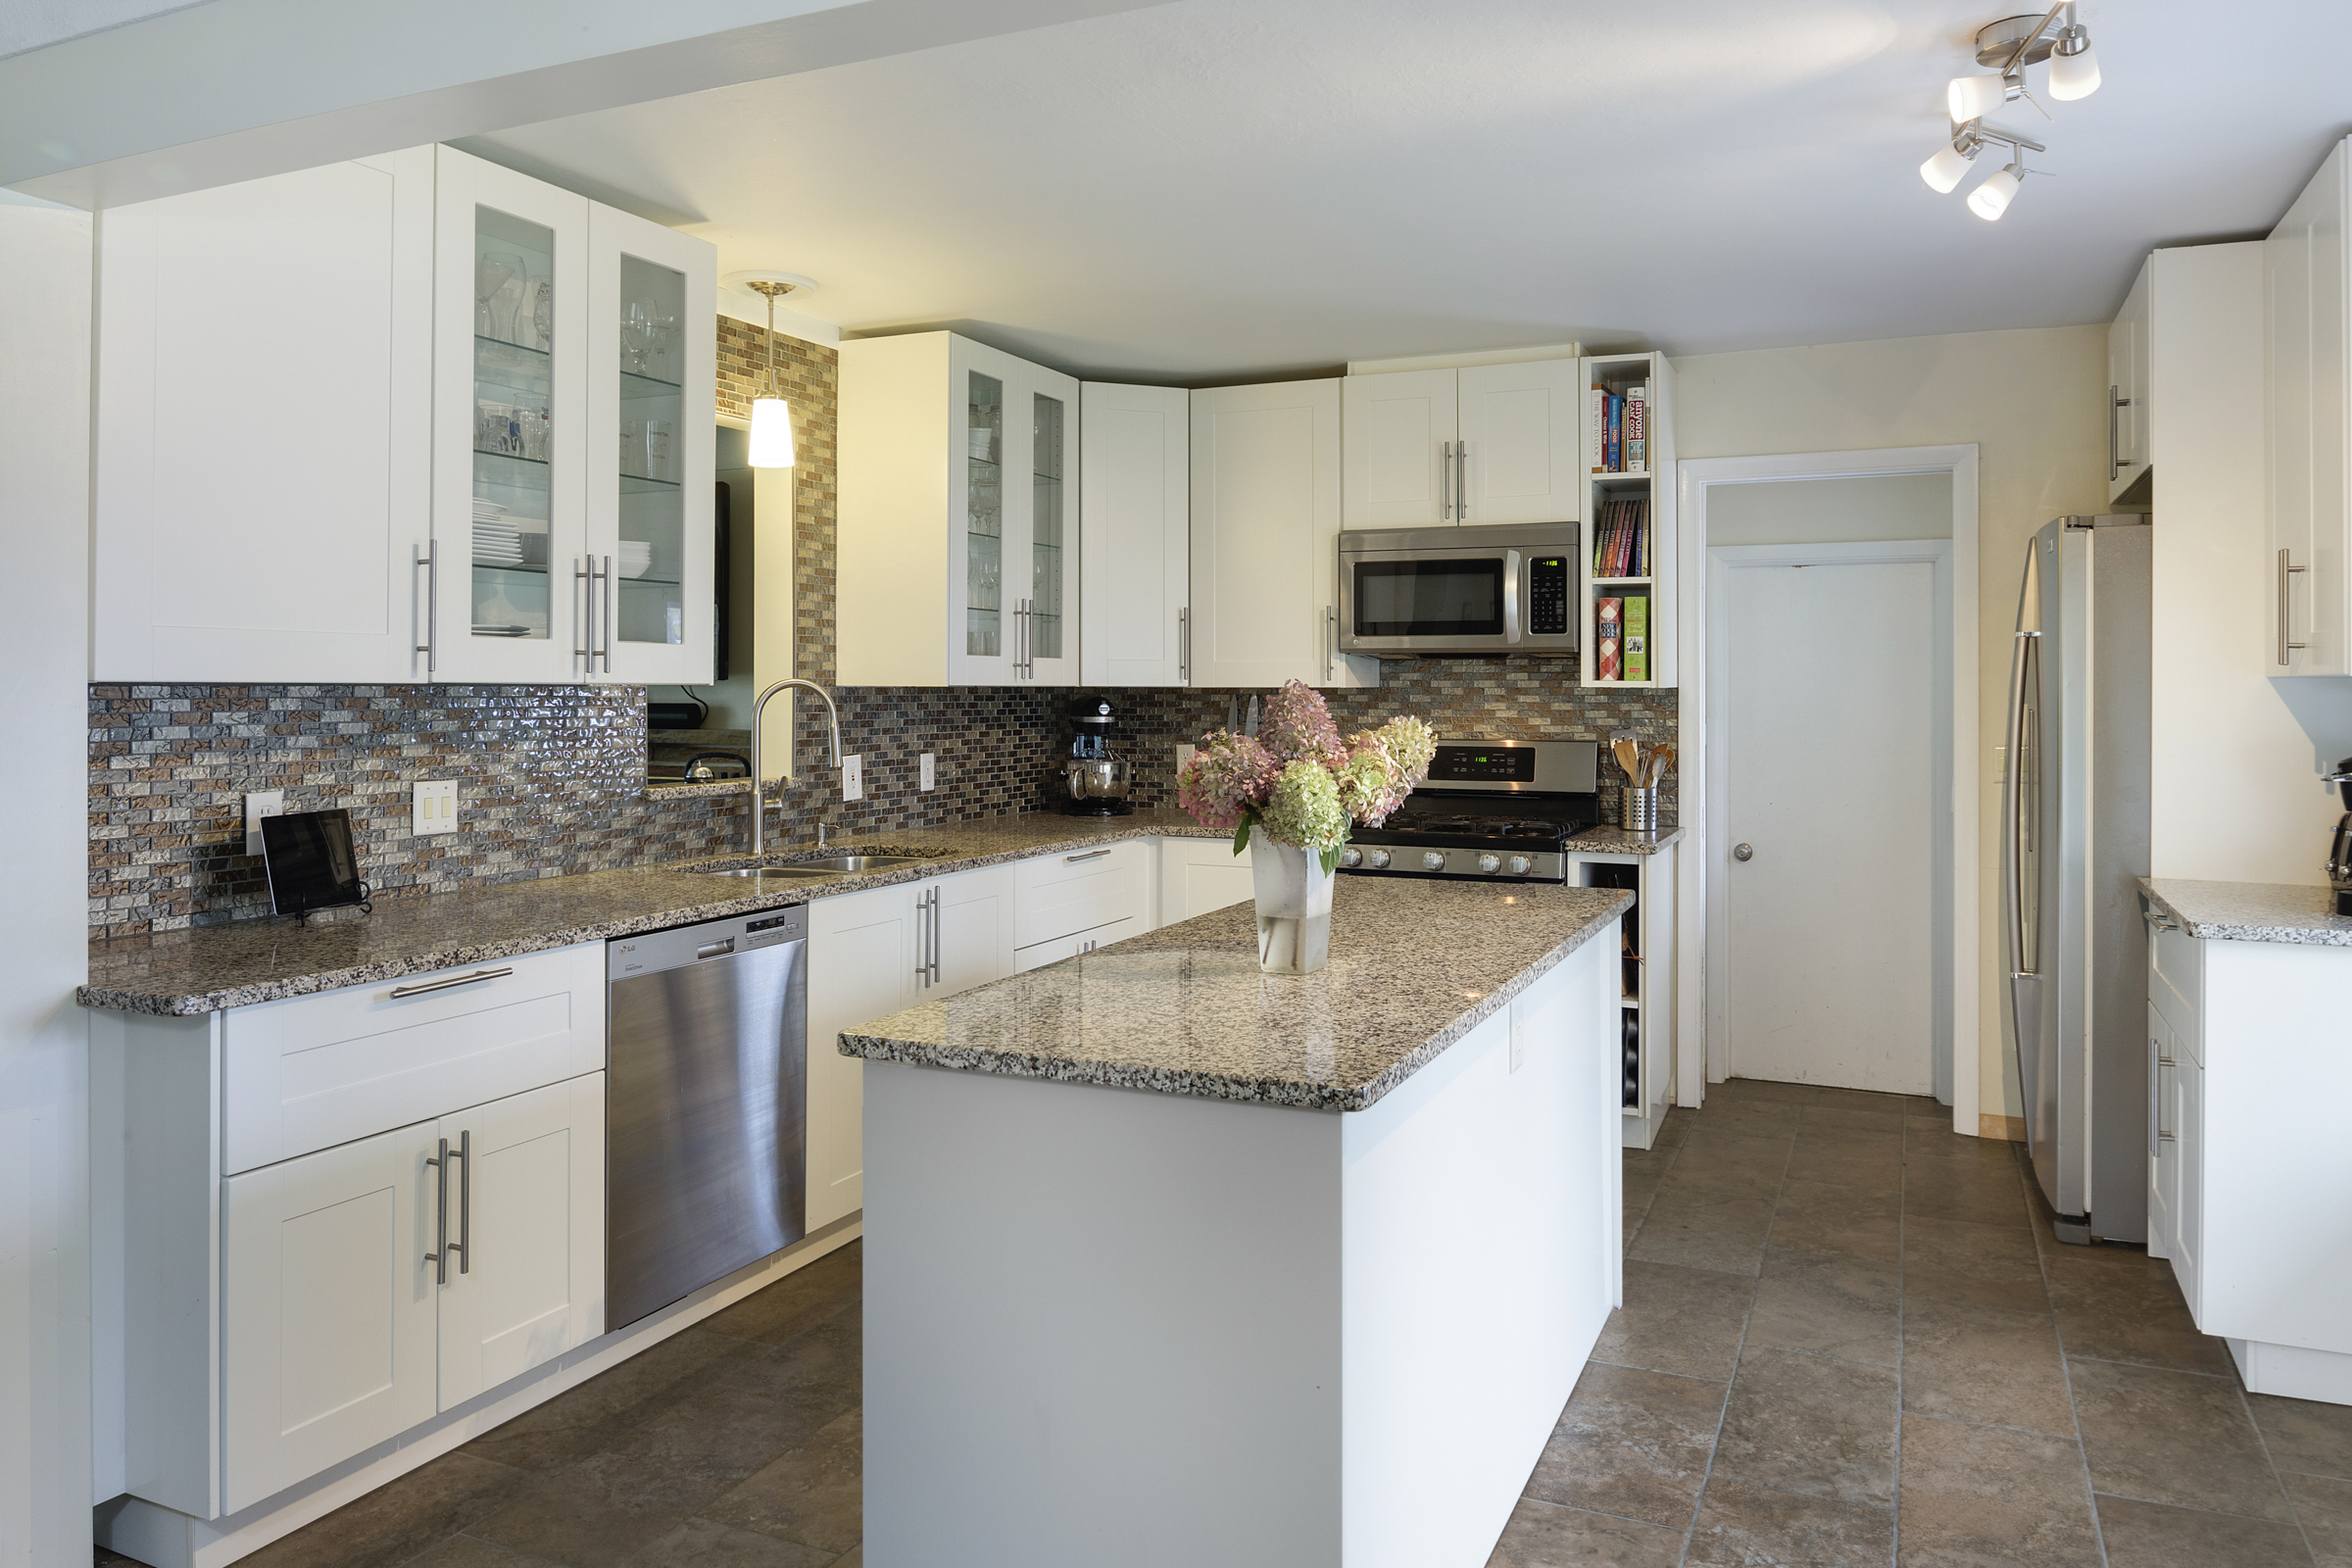 Example of a kitchen we built in NE Minneapolis in 2016/2017. For more examples of our work click  here .